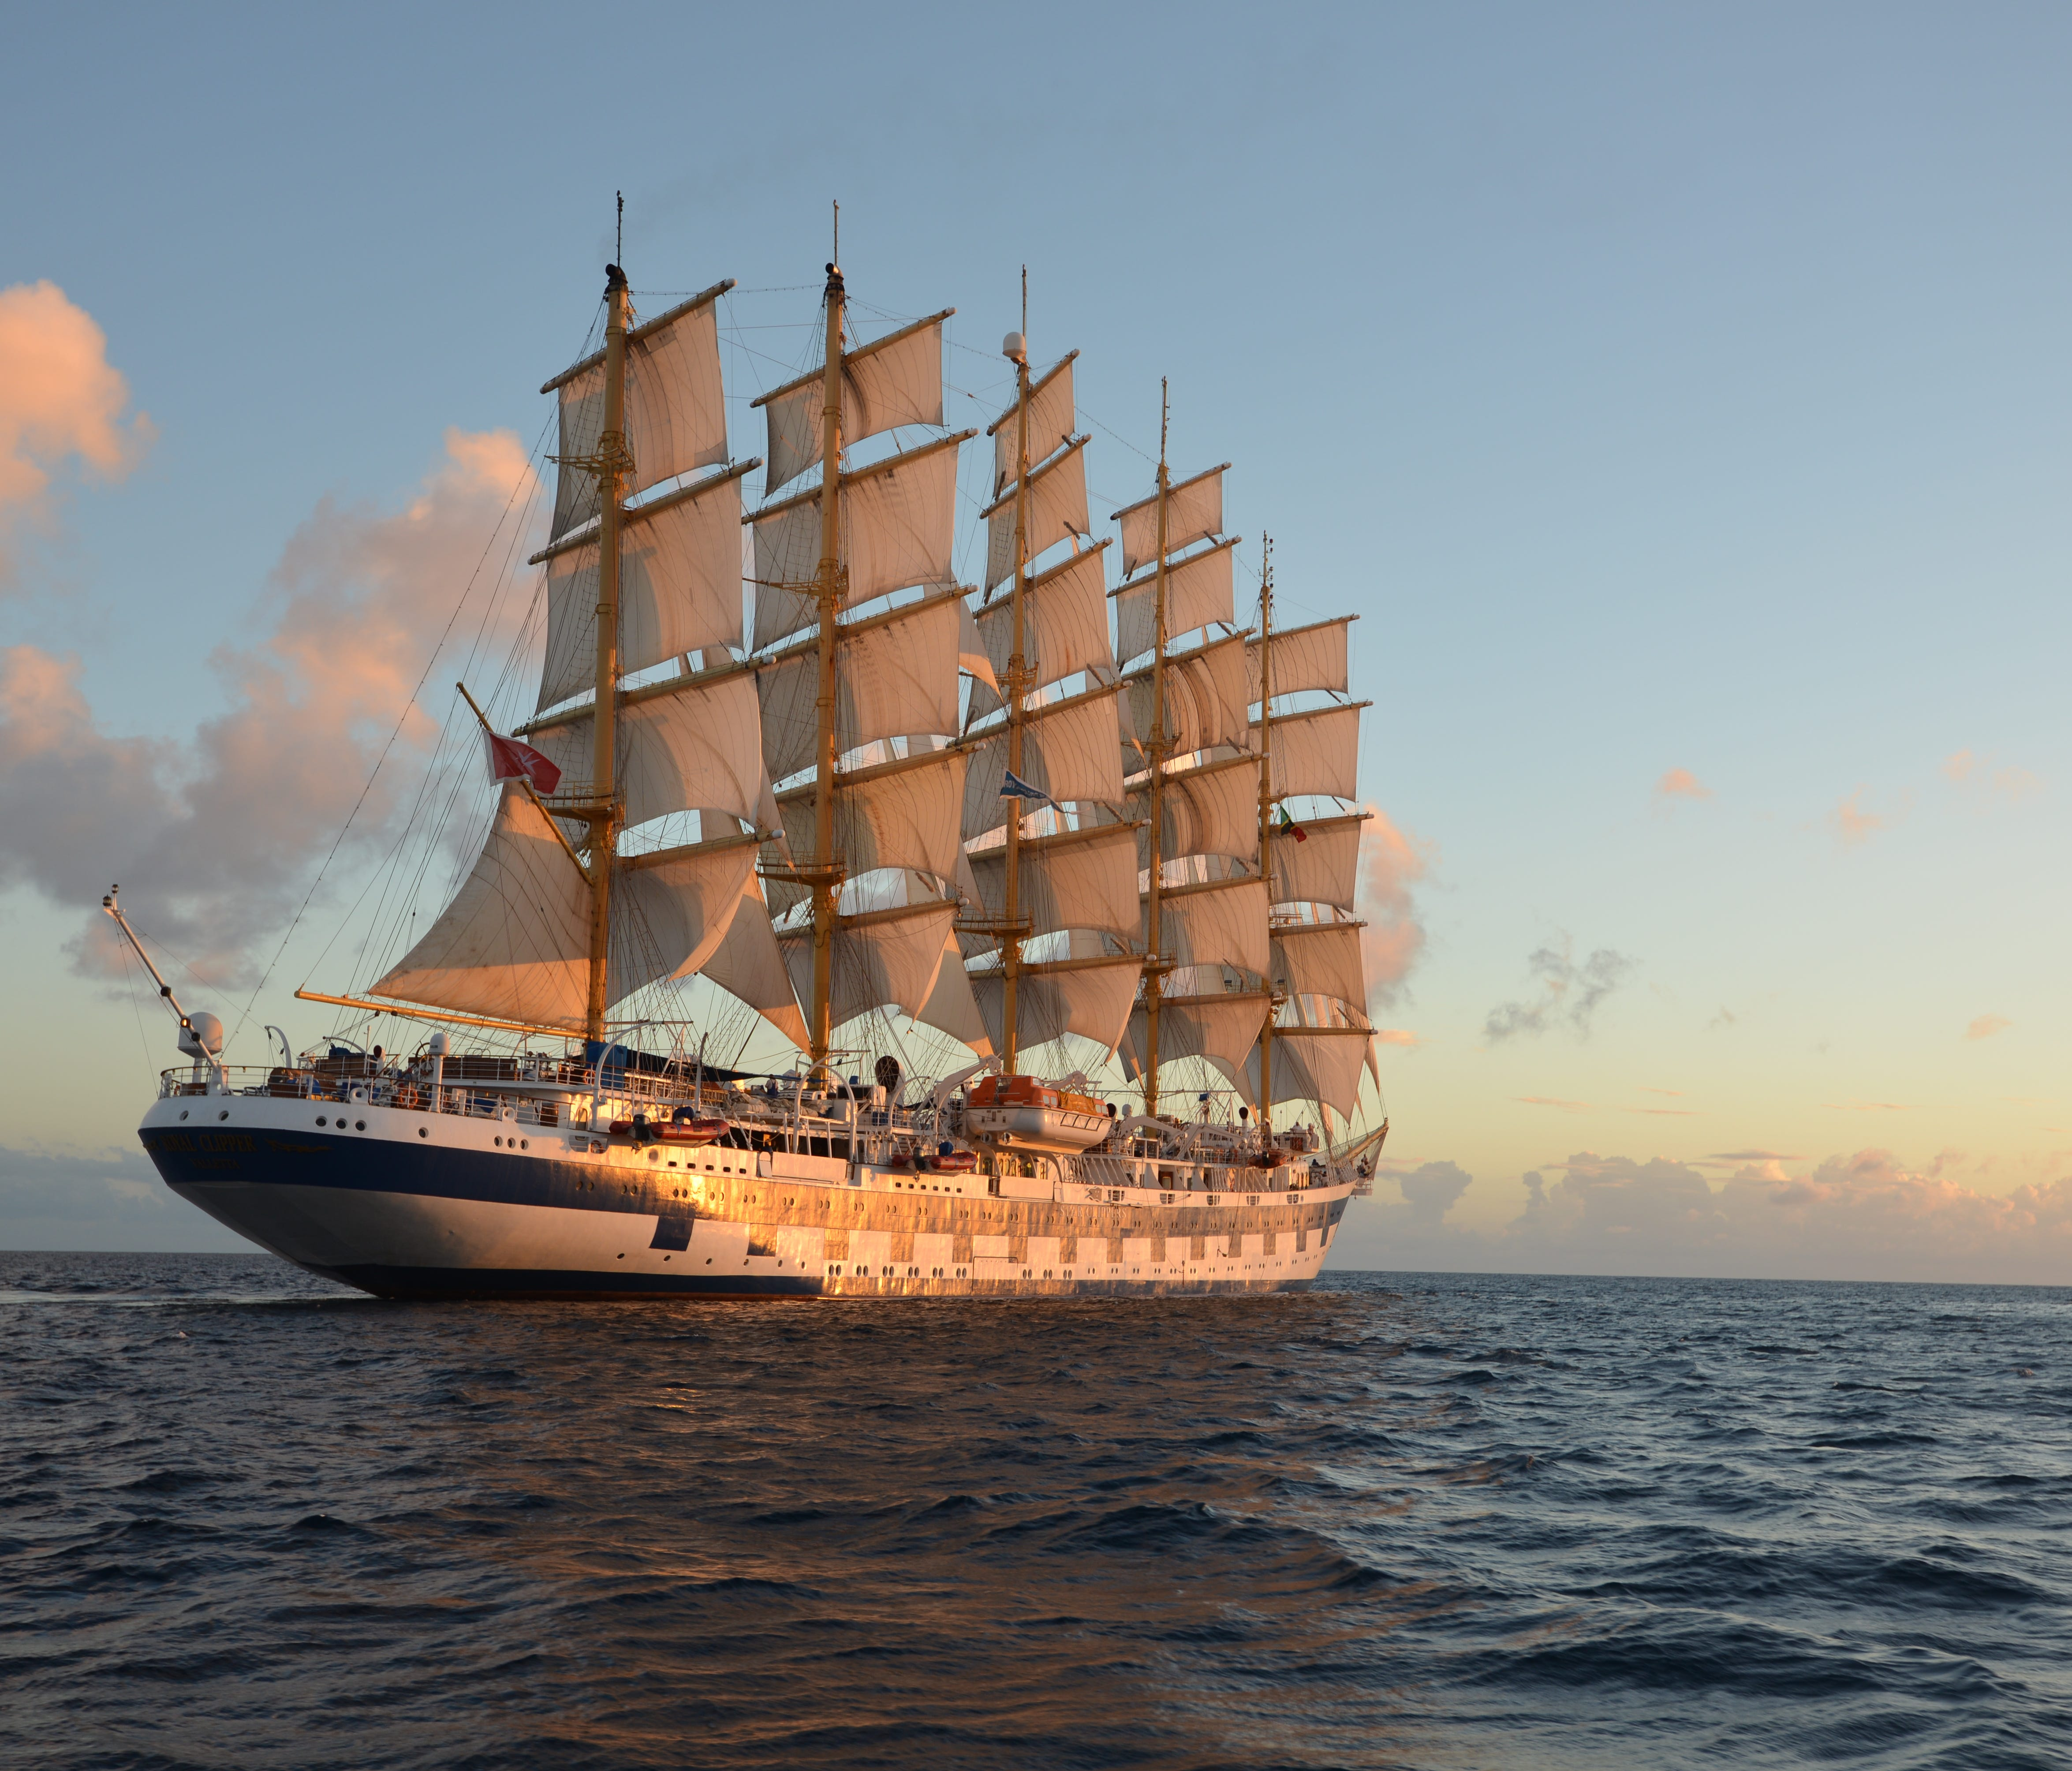 Modeled on the Preussen, an iconic sailing ship of the early 20th century, Royal Clipper is propelled by 42 sails spread across five masts.